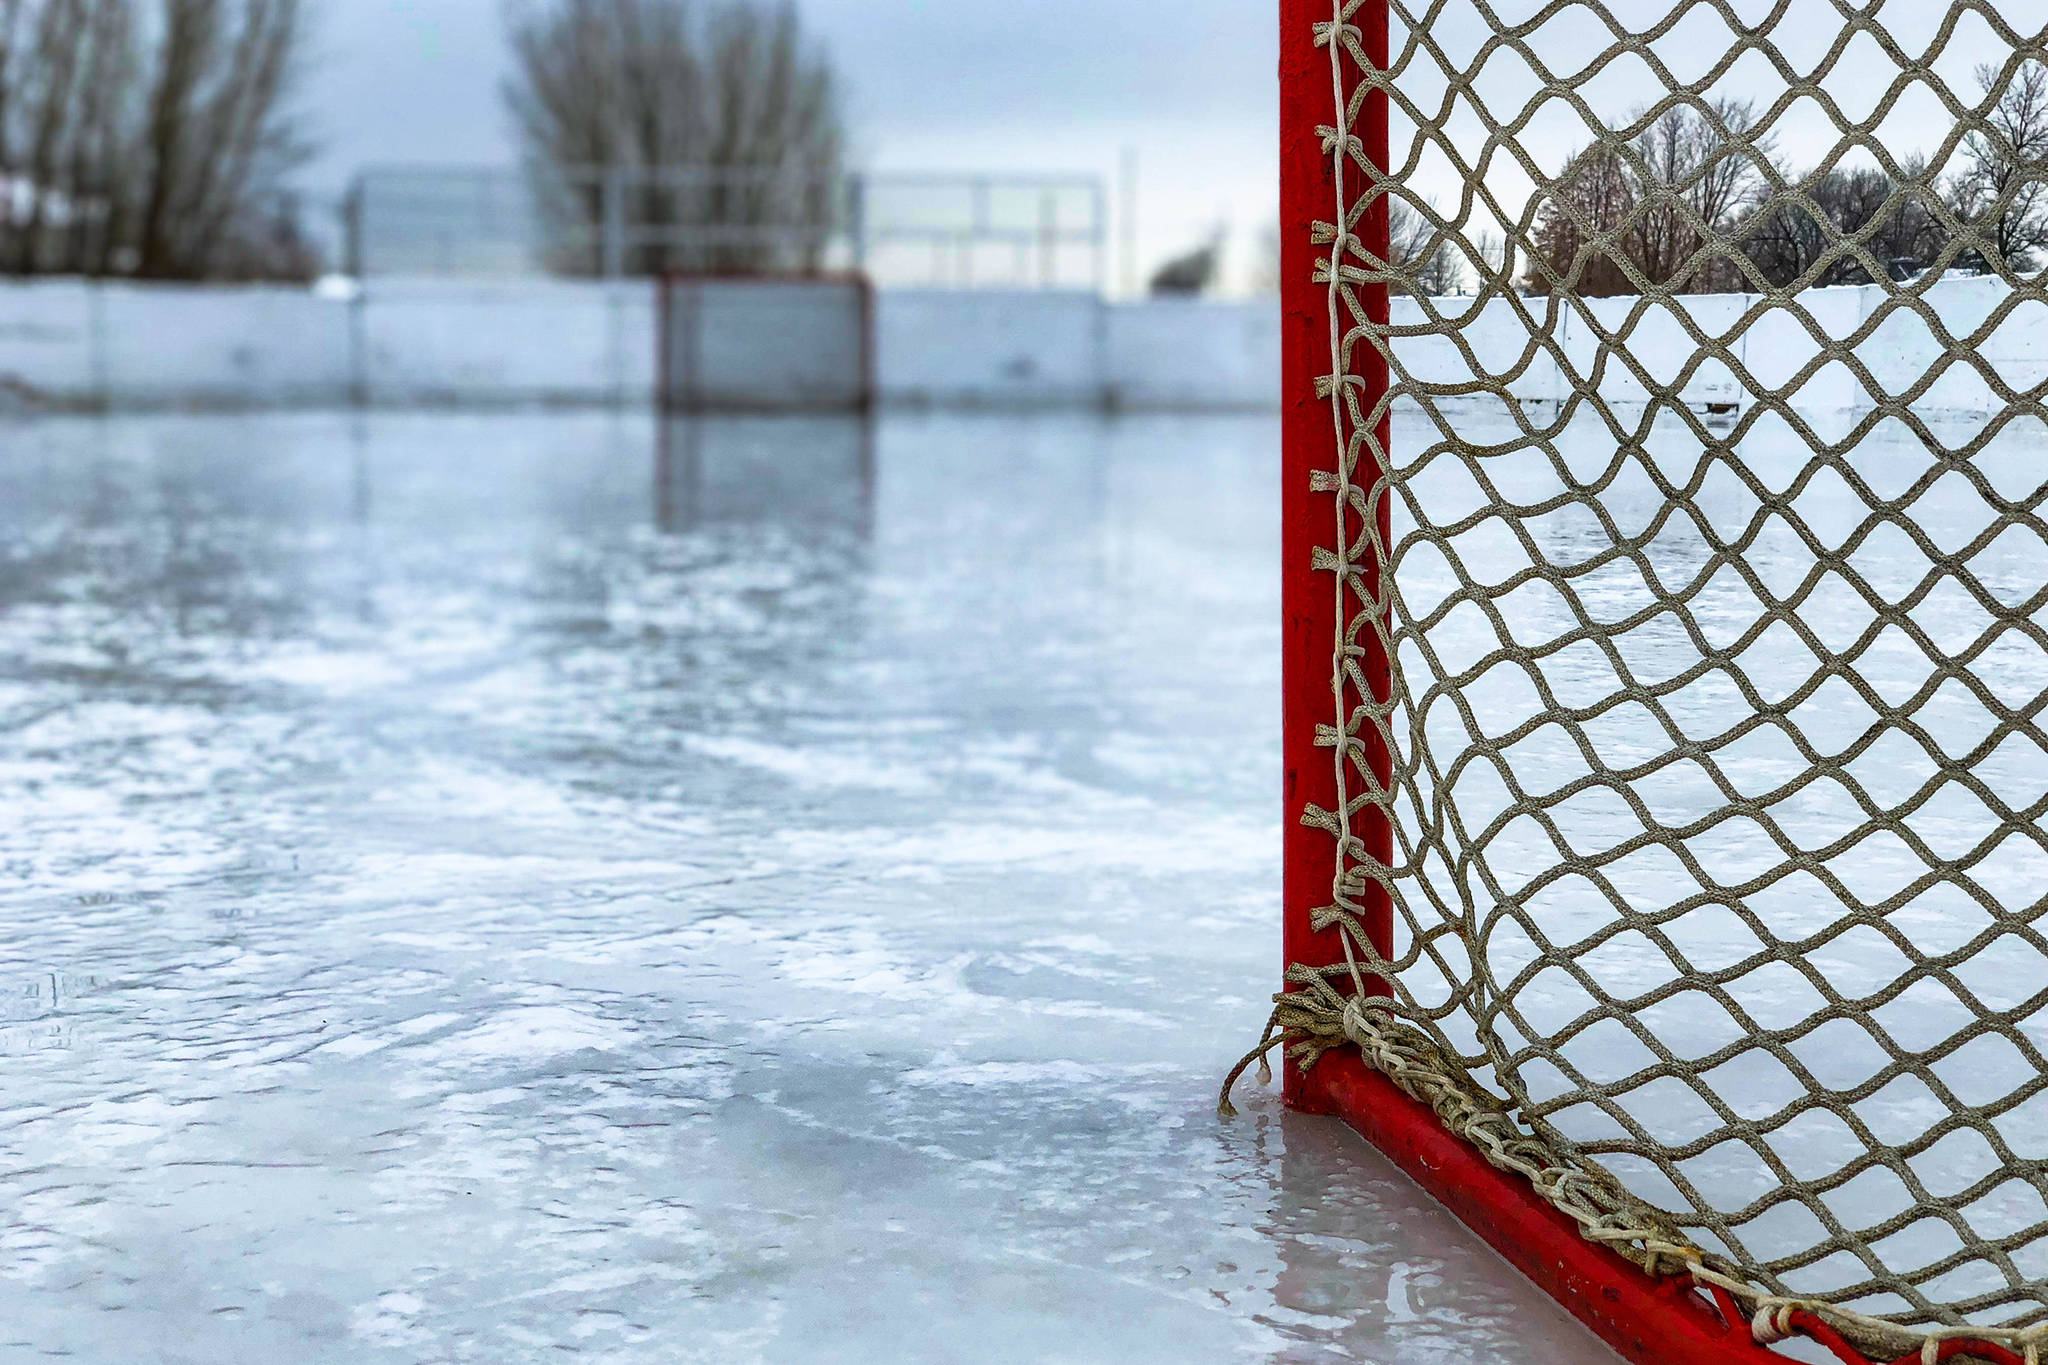 Capitals fall to Blue Devils in comp hockey action